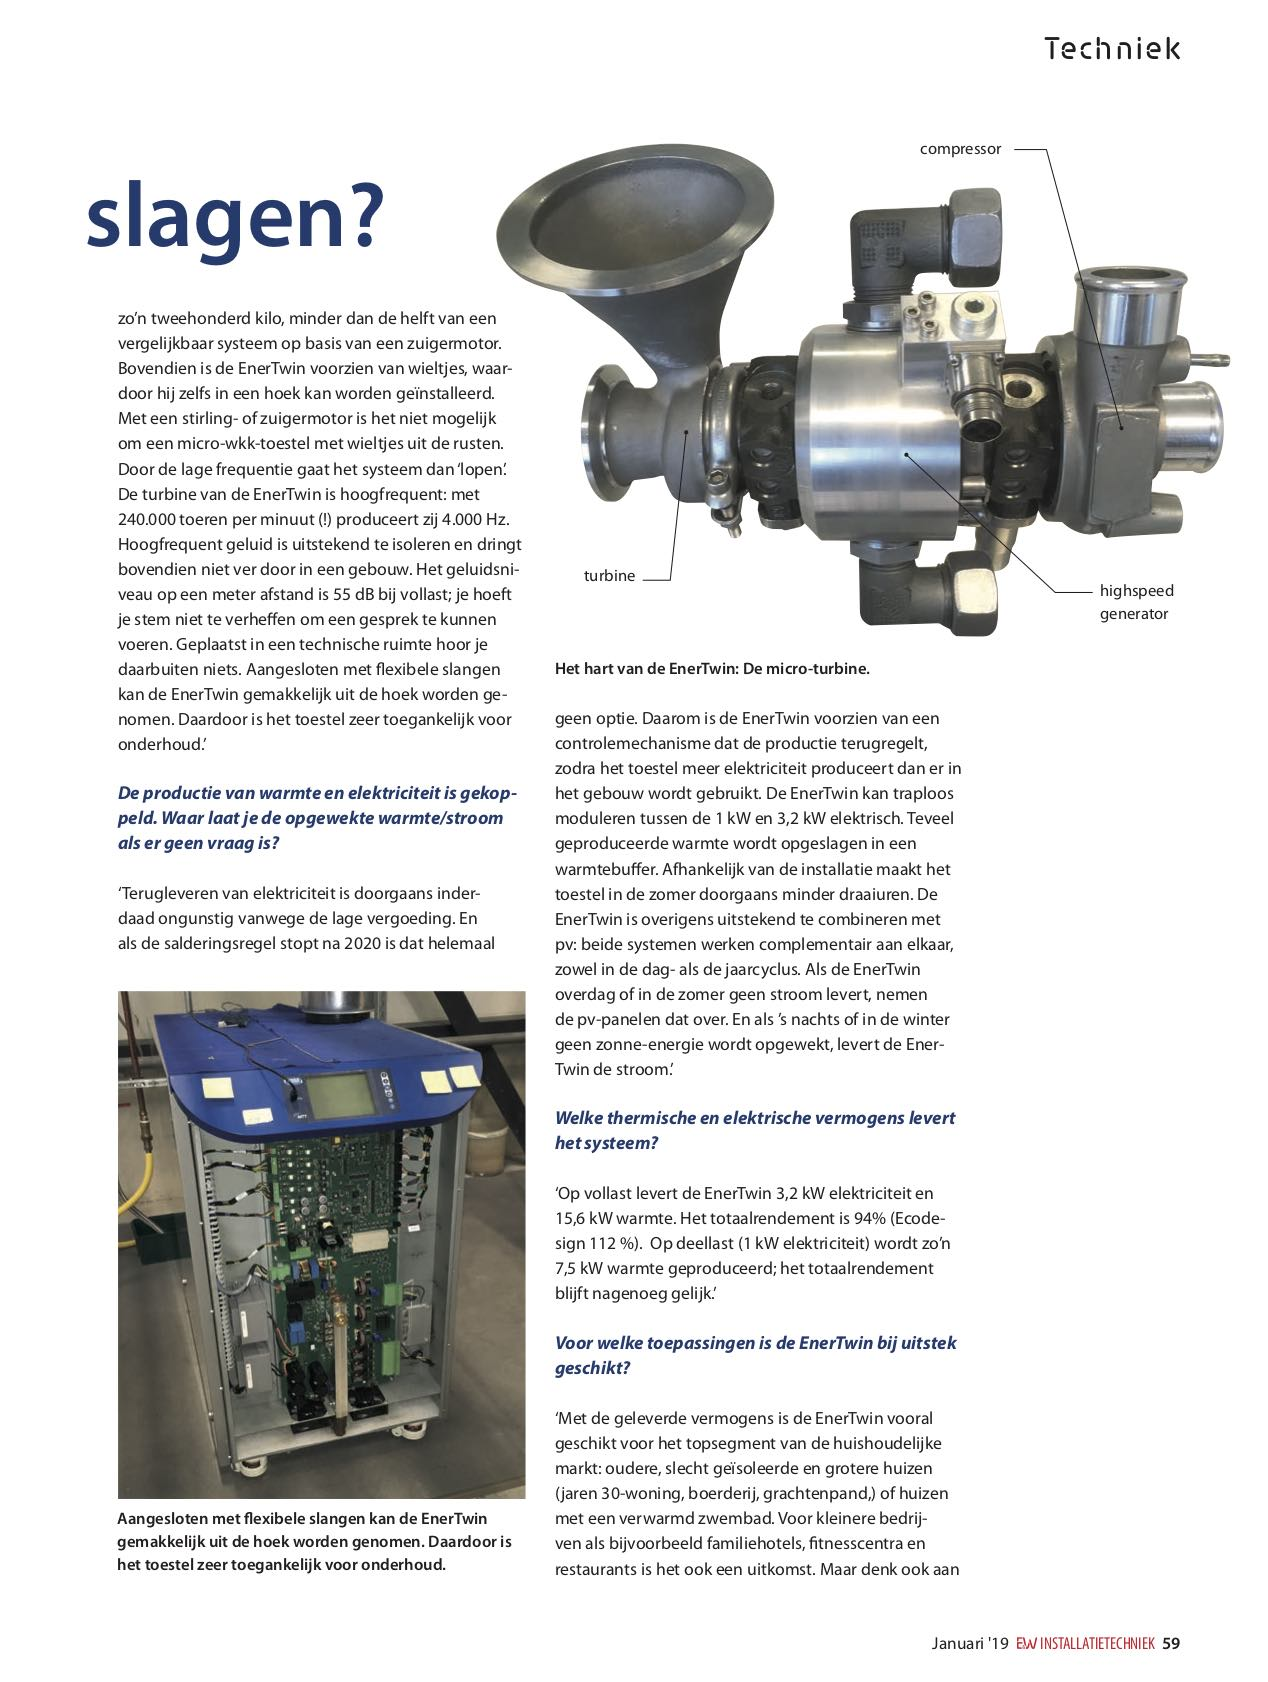 Elektriciteit Zwembad Enertwin In Uneto Vni S January 19 Issue Mtt Micro Turbine